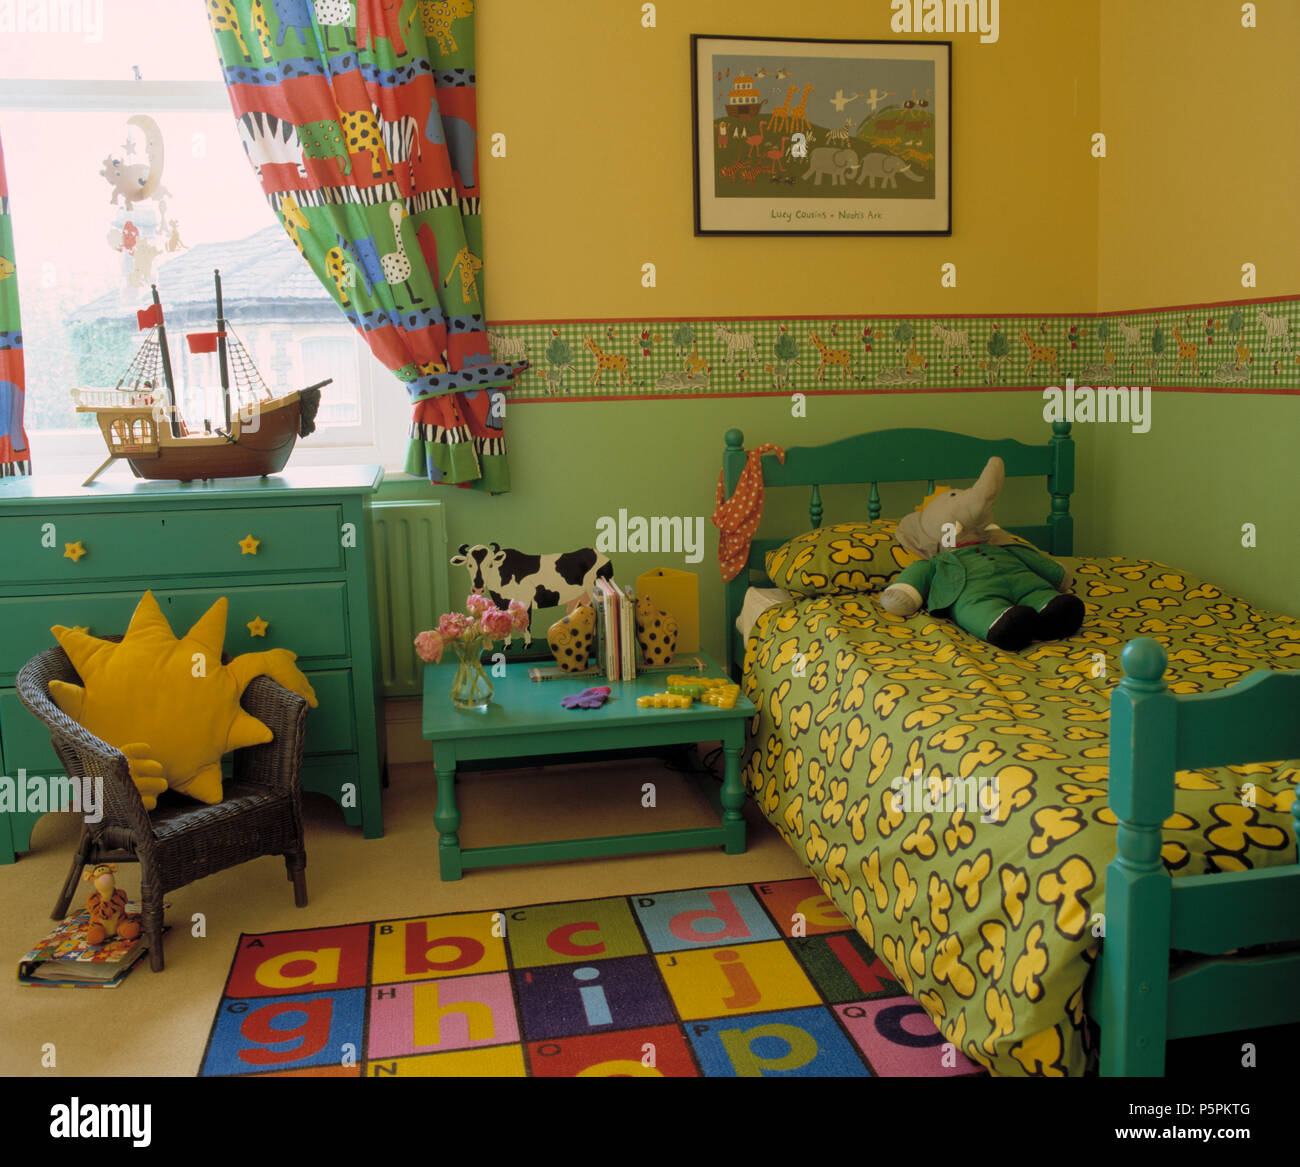 Turquoise Painted Furniture In Children S Colourful Nineties Bedroom With Dado Wallpaper Border Stock Photo Alamy